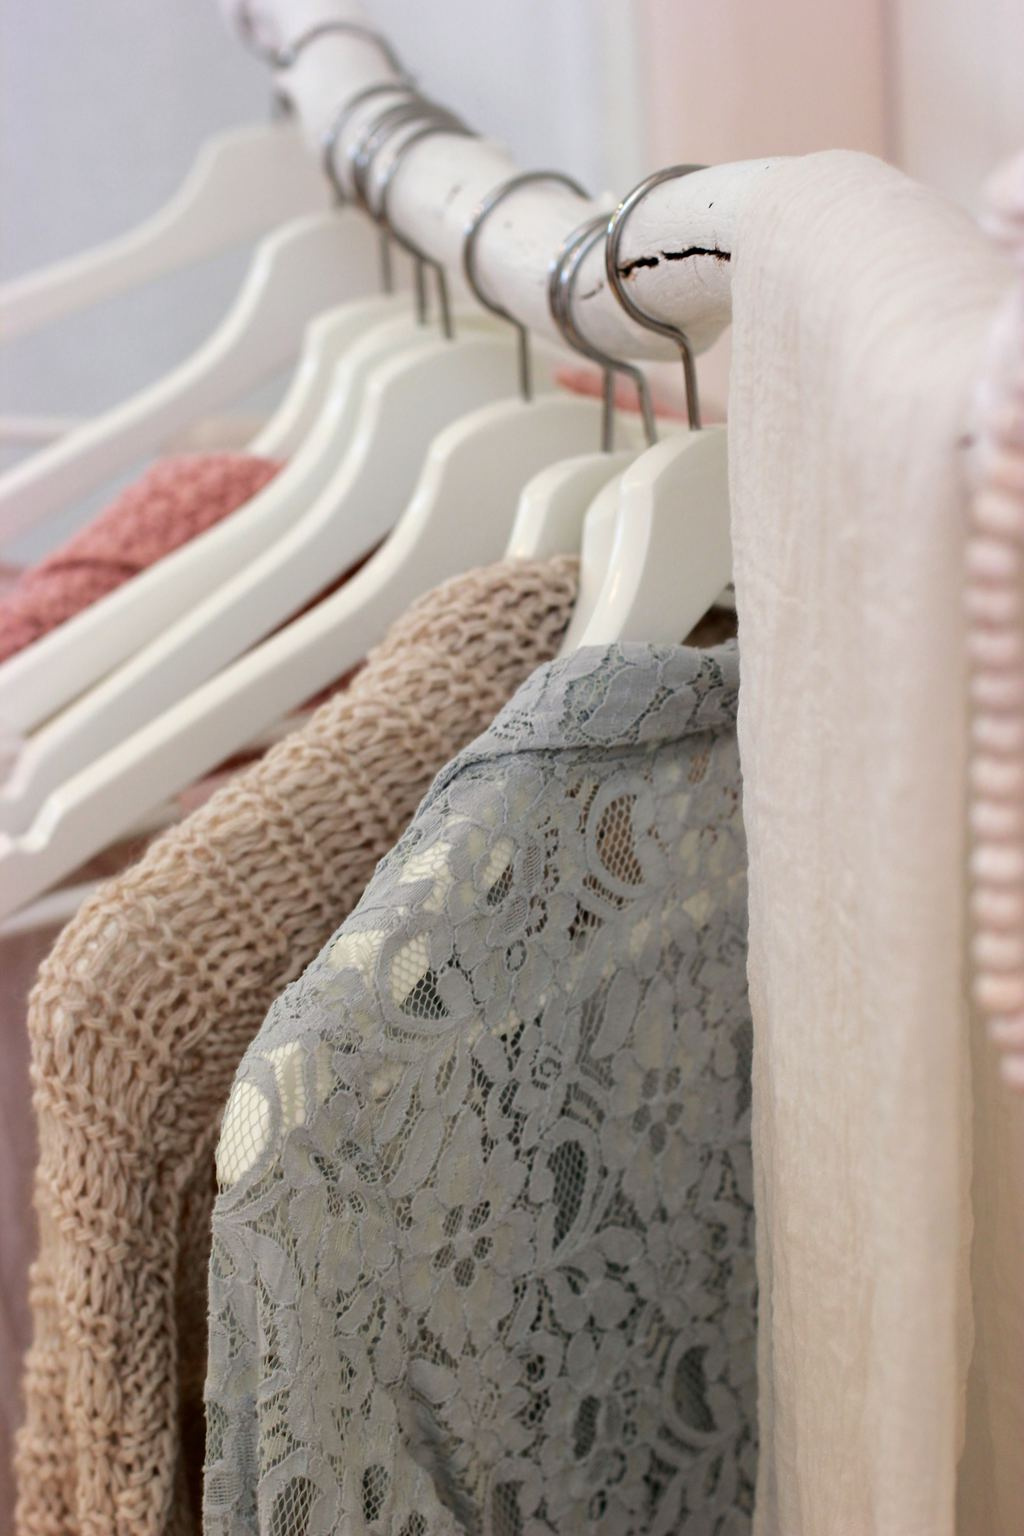 Photo of several pastel-colored clothing items on hangers